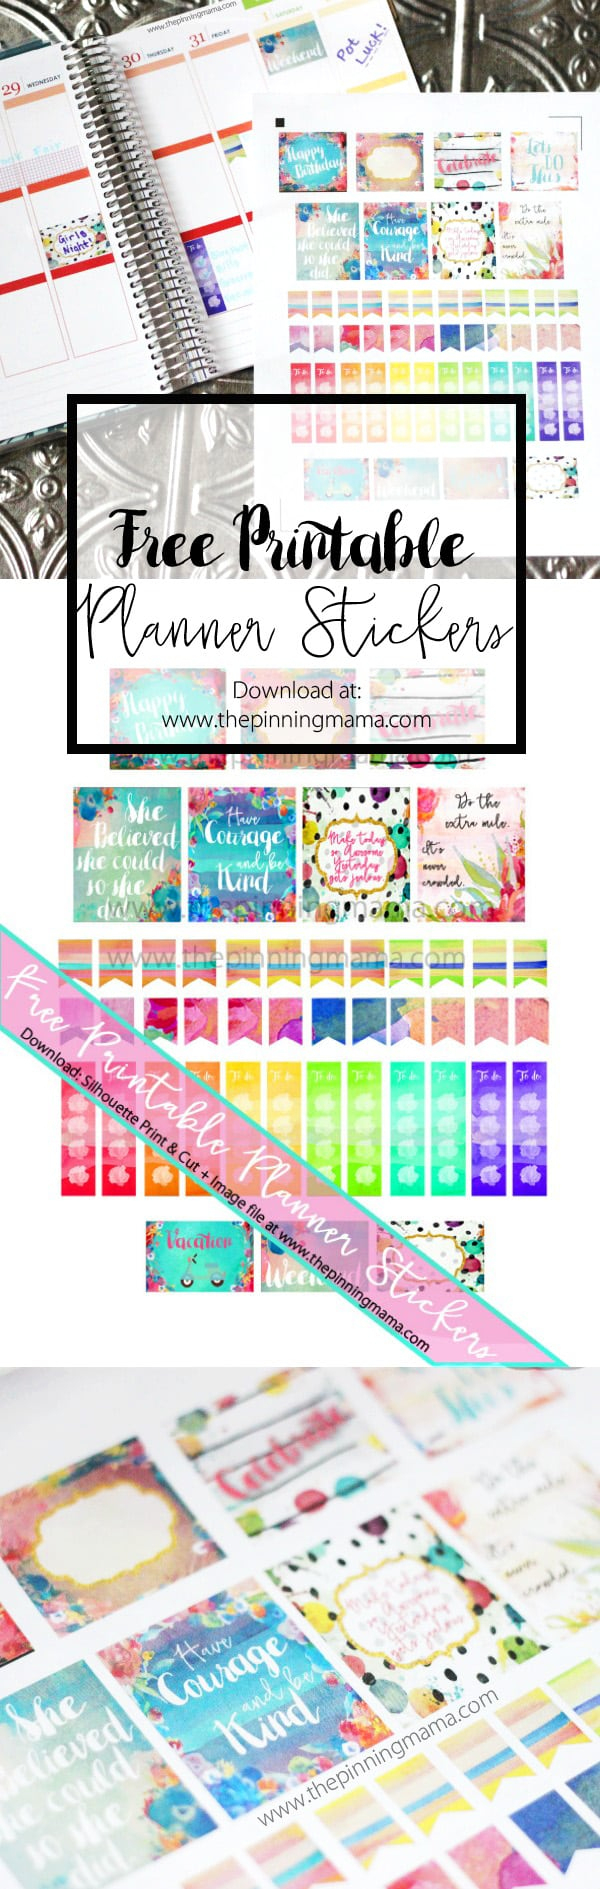 Free Printable Planner Stickers • The Pinning Mama - Printable Erin Condren Stickers Free